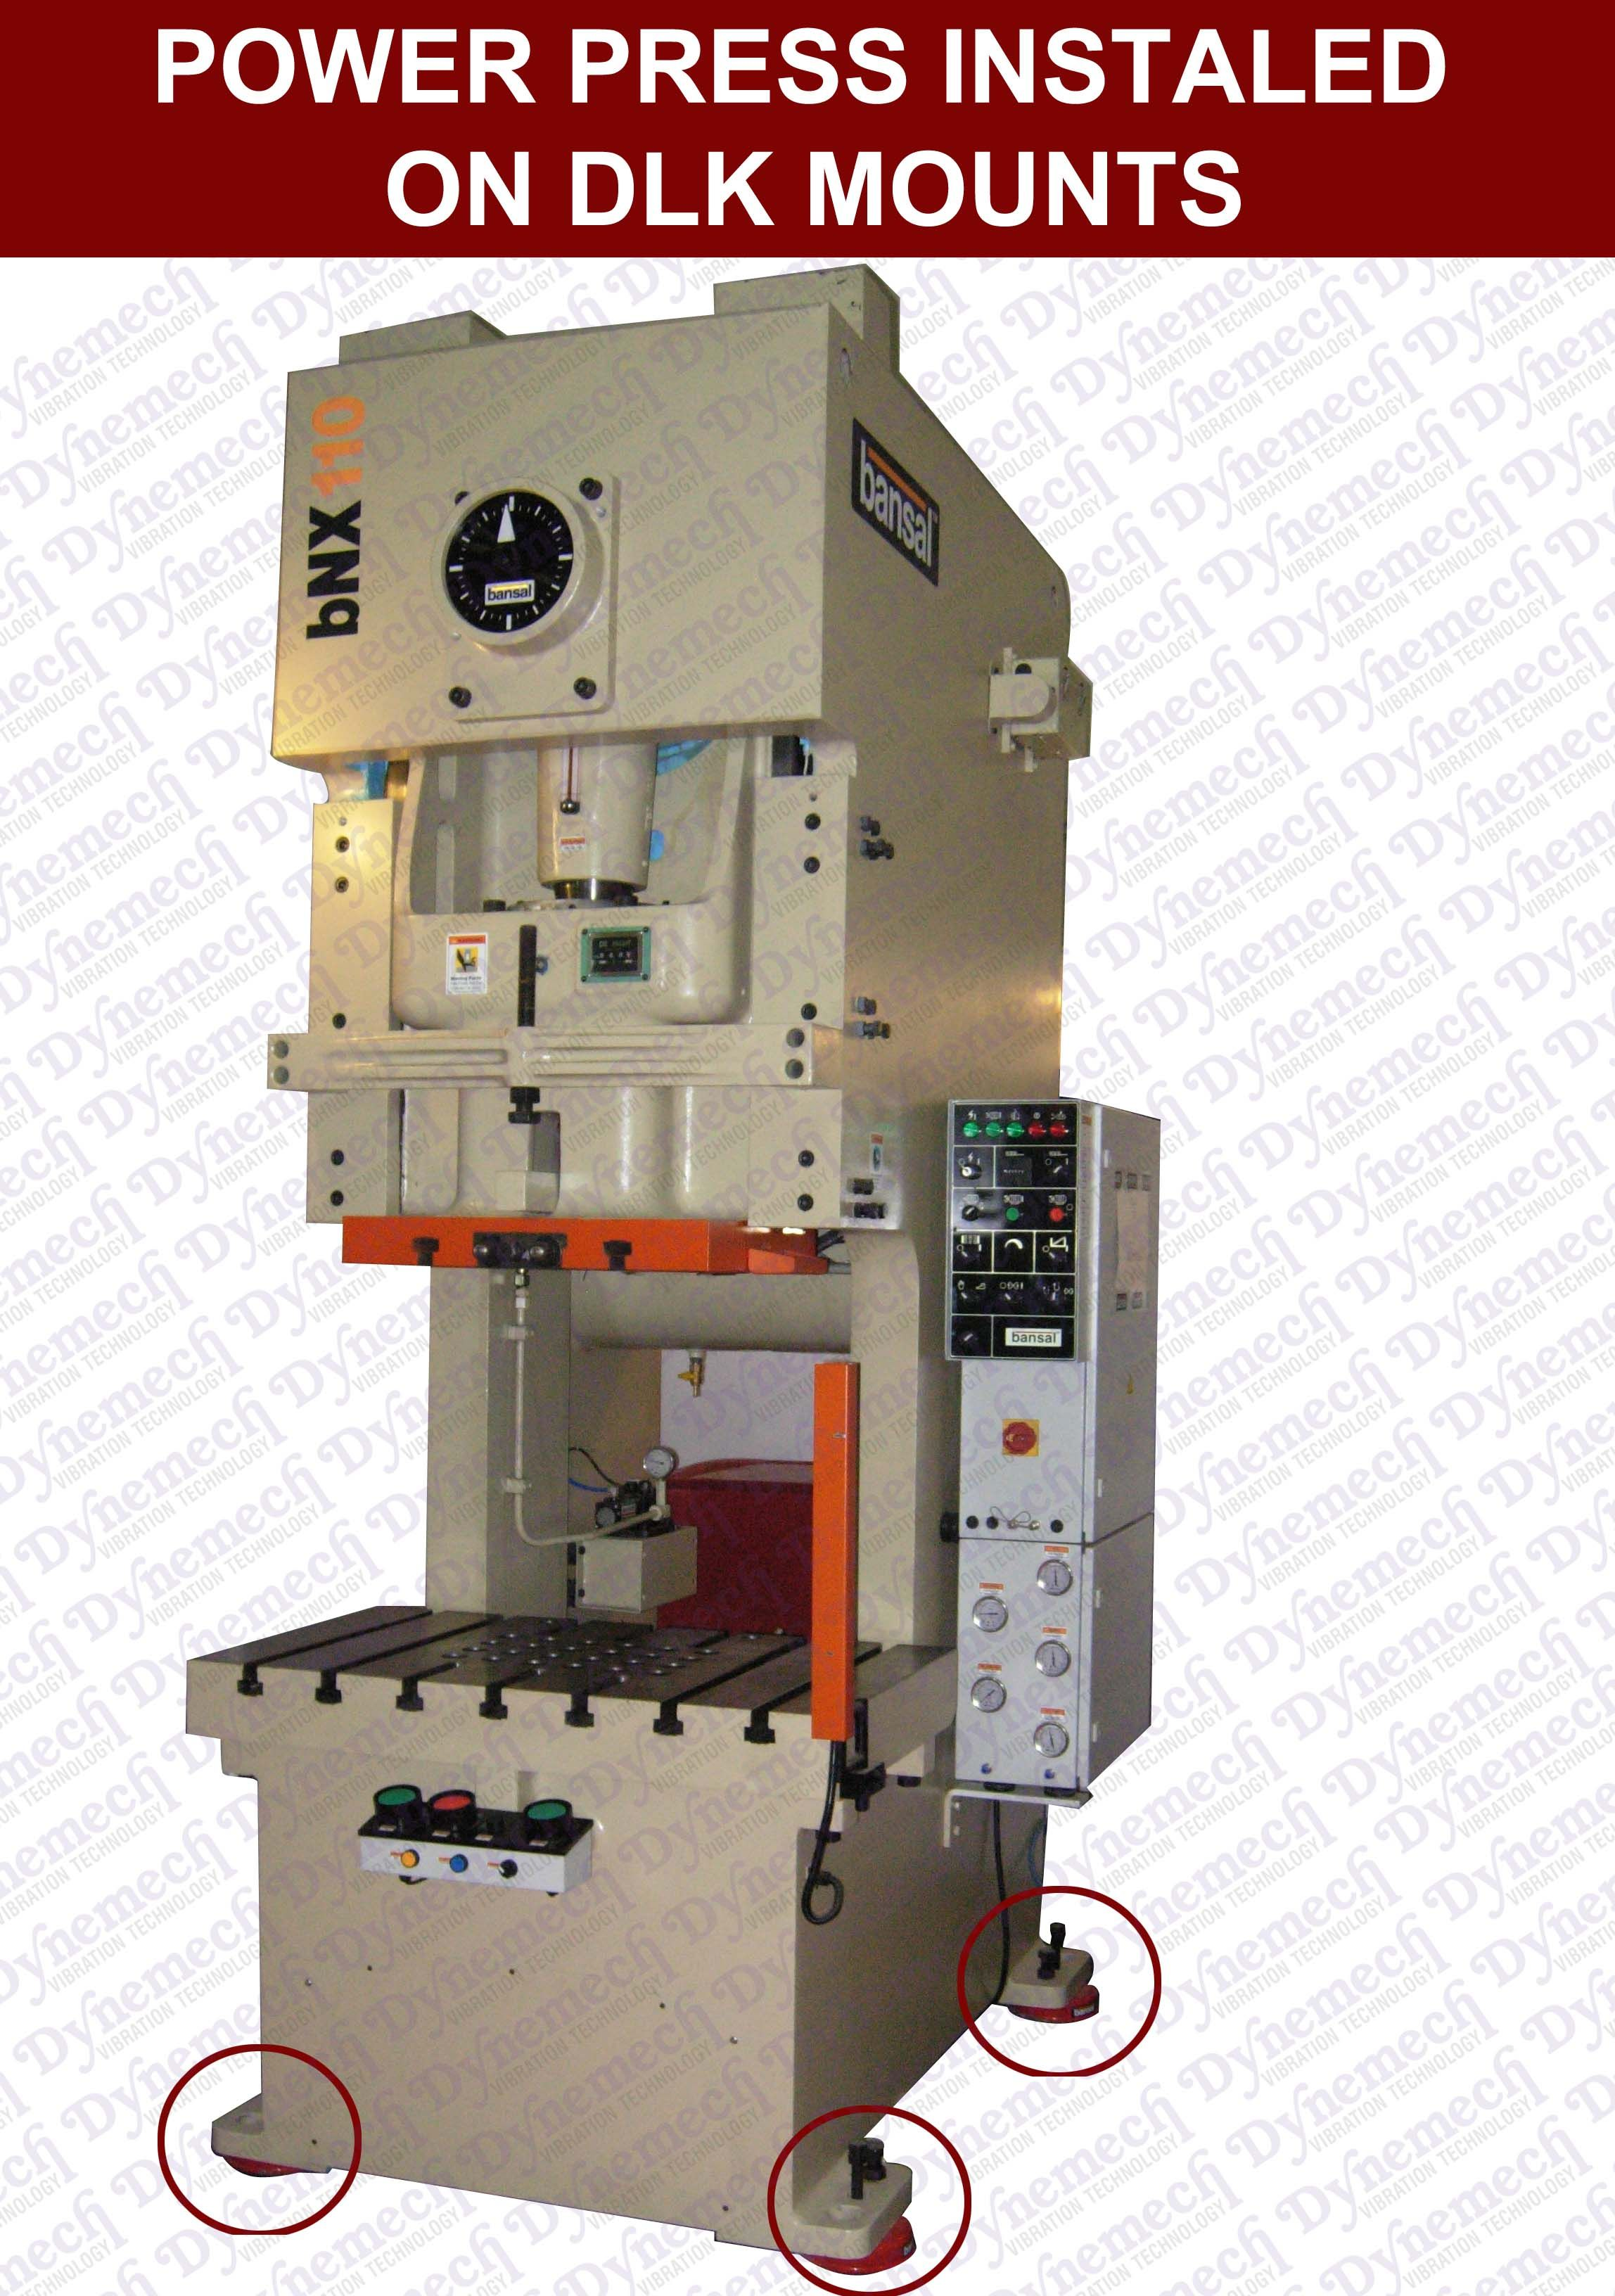 lowcost vibrationdampeners from dynemech Machine